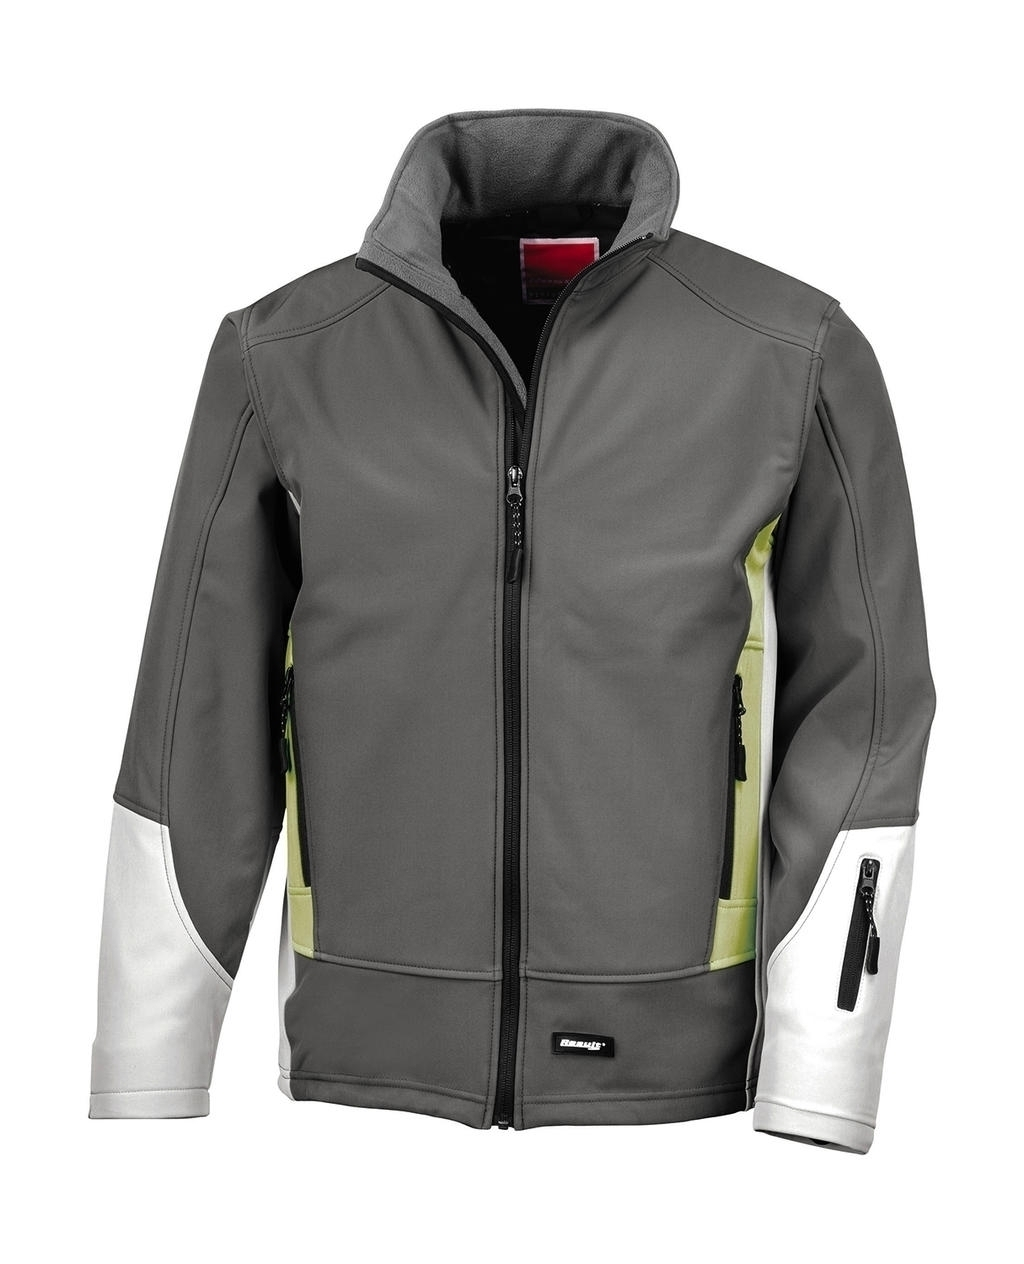 Blade Soft Shell Jacket Charcoal/Pampas/Pale Grey Gris